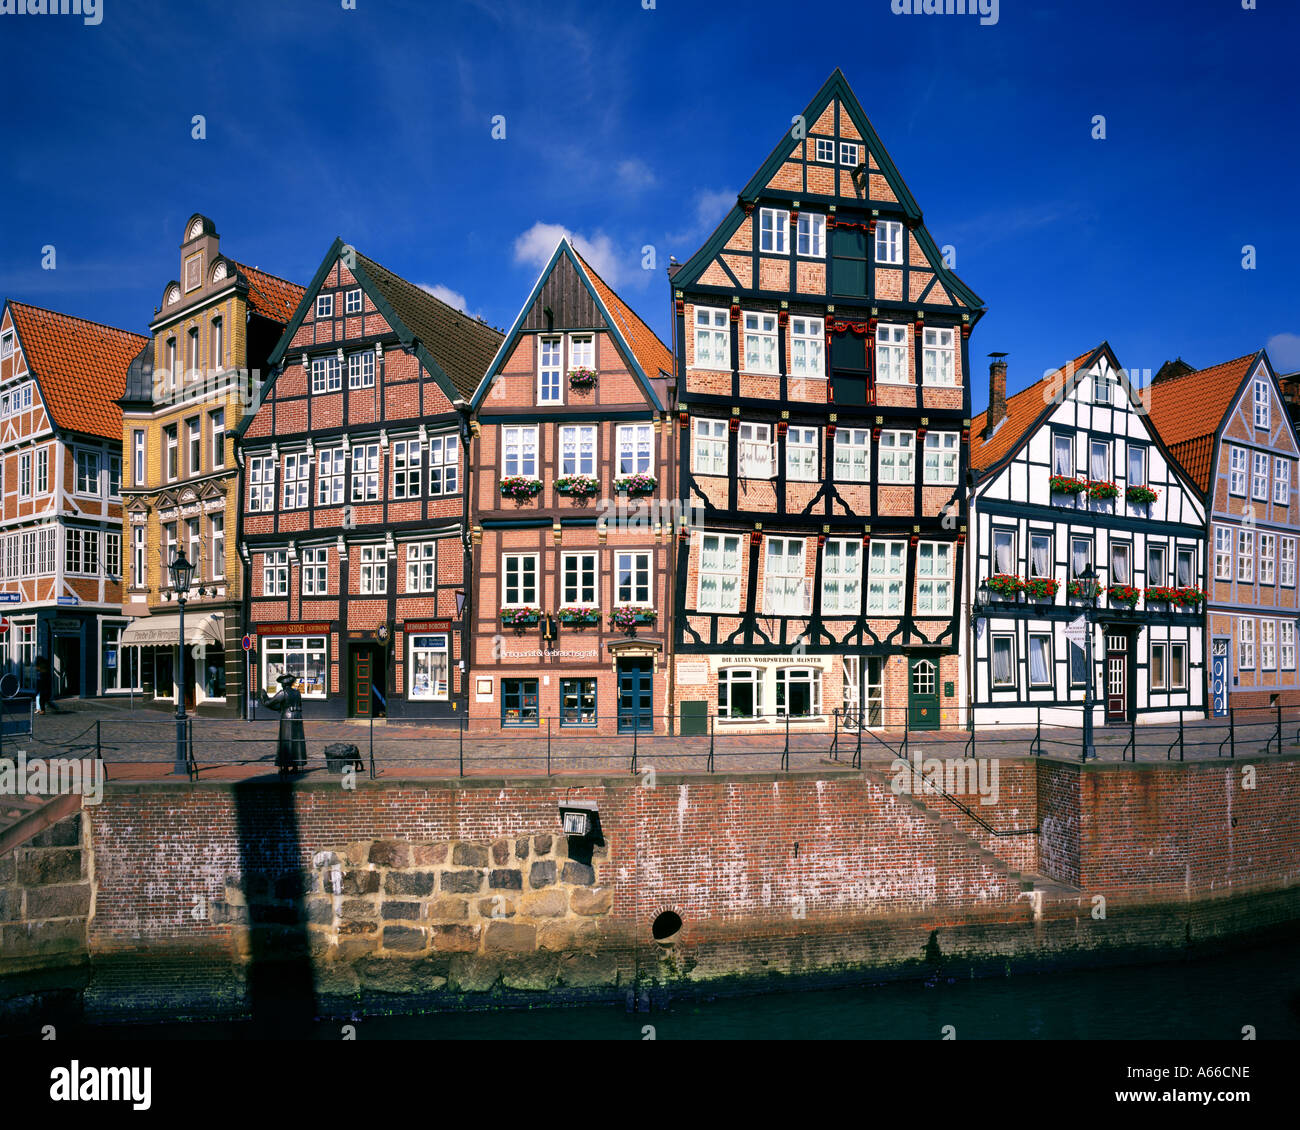 DE -  LOWER SAXONY:  Stade Town and River Schwinge in 'Altes Land' - Stock Image